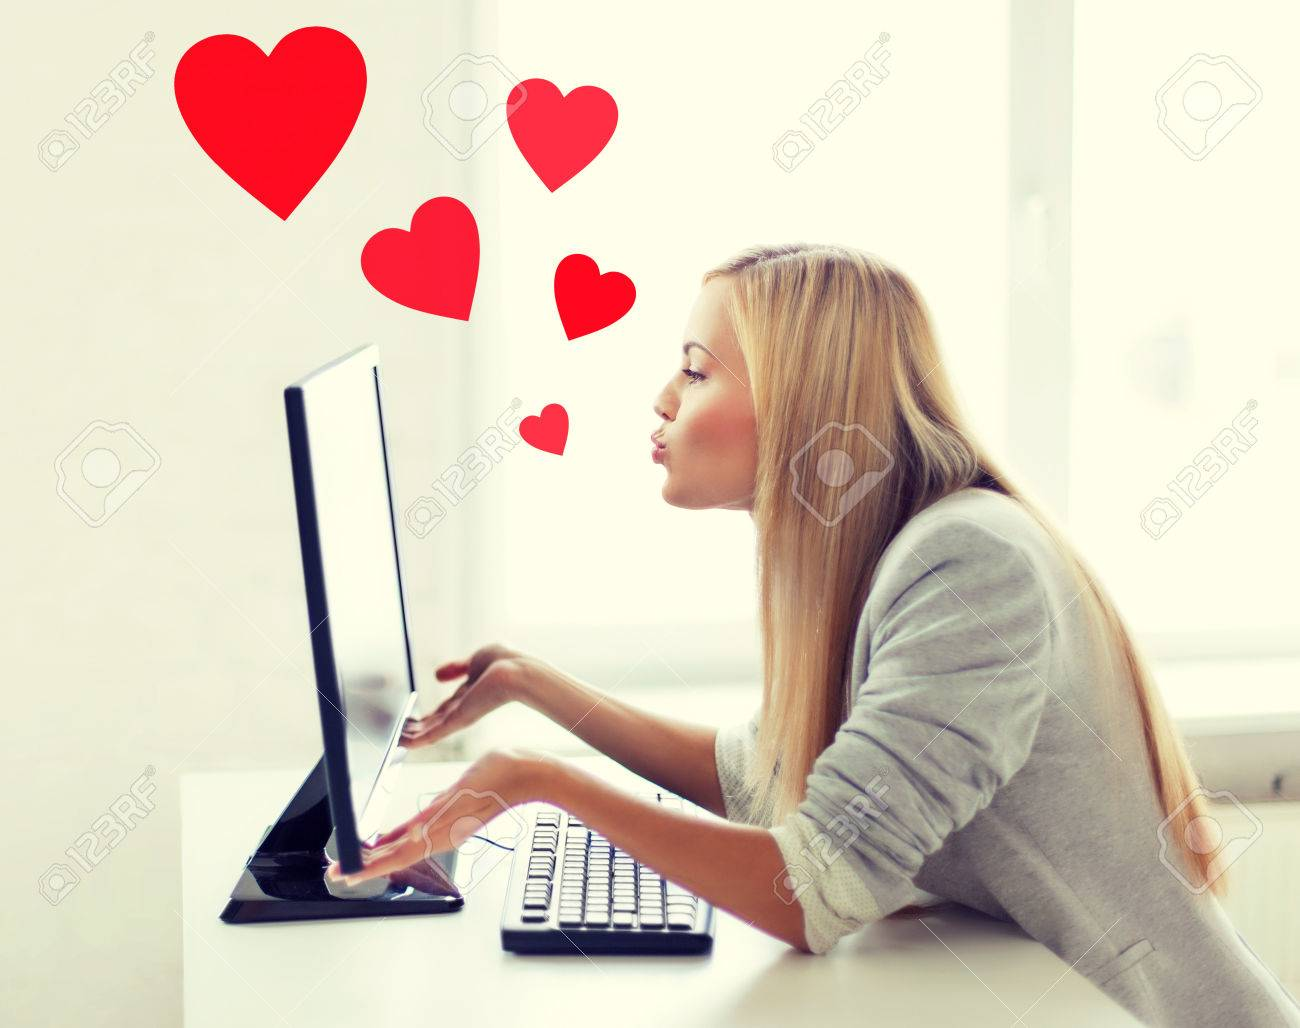 introduction for dating sites examples